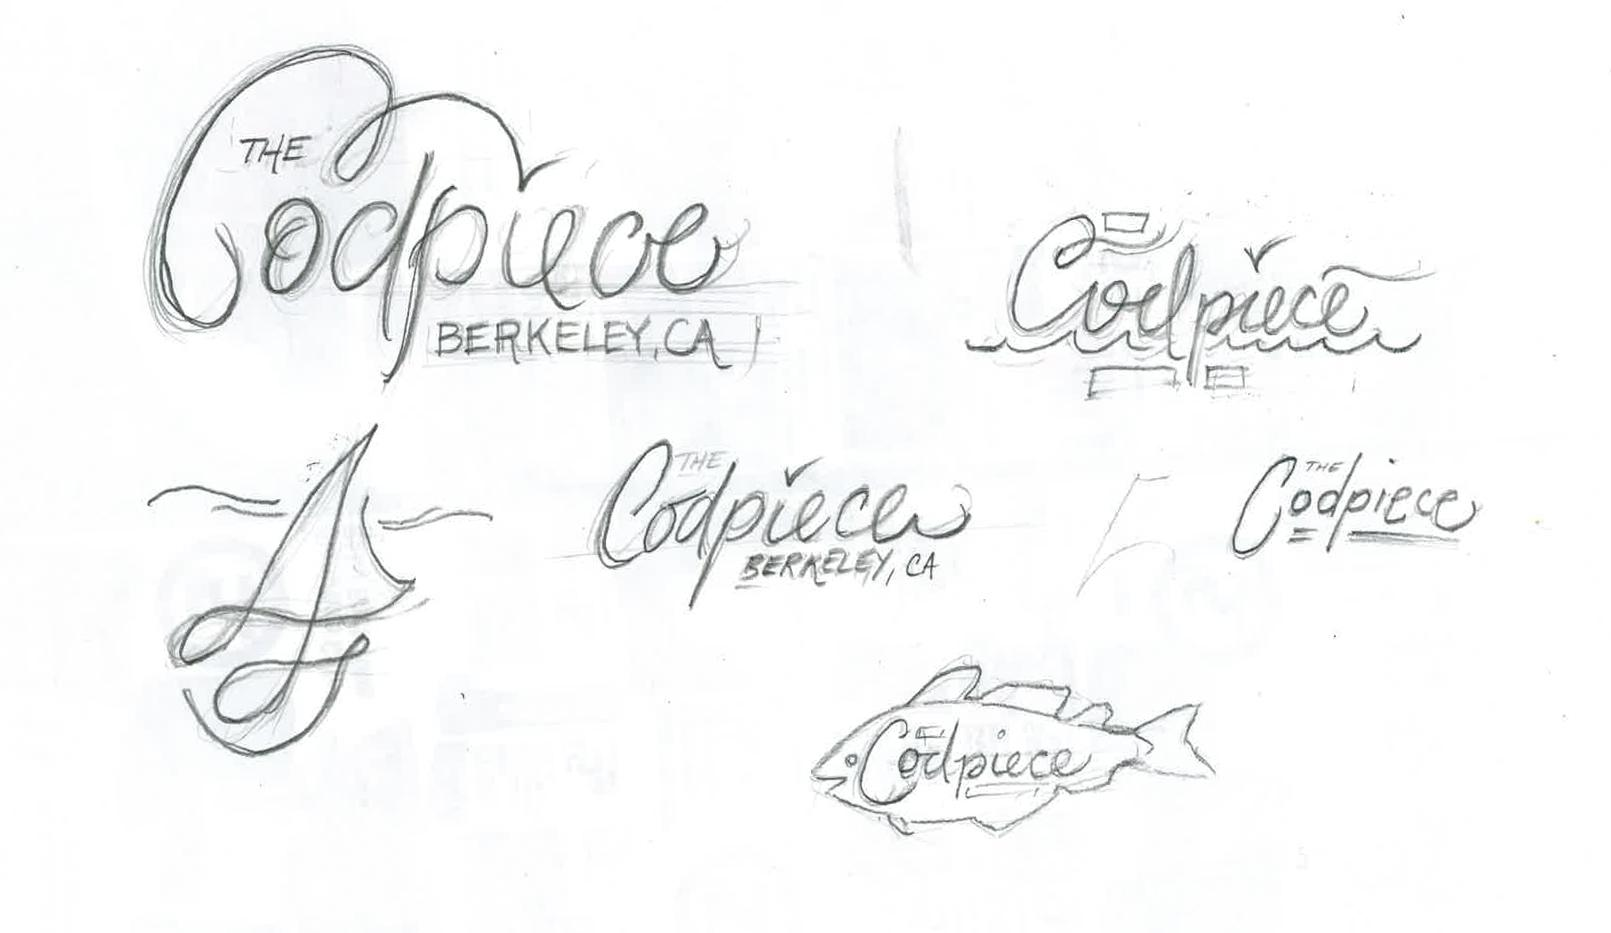 """Lettering for sailboat """"the Codpiece - Berkeley, CA"""" - image 4 - student project"""